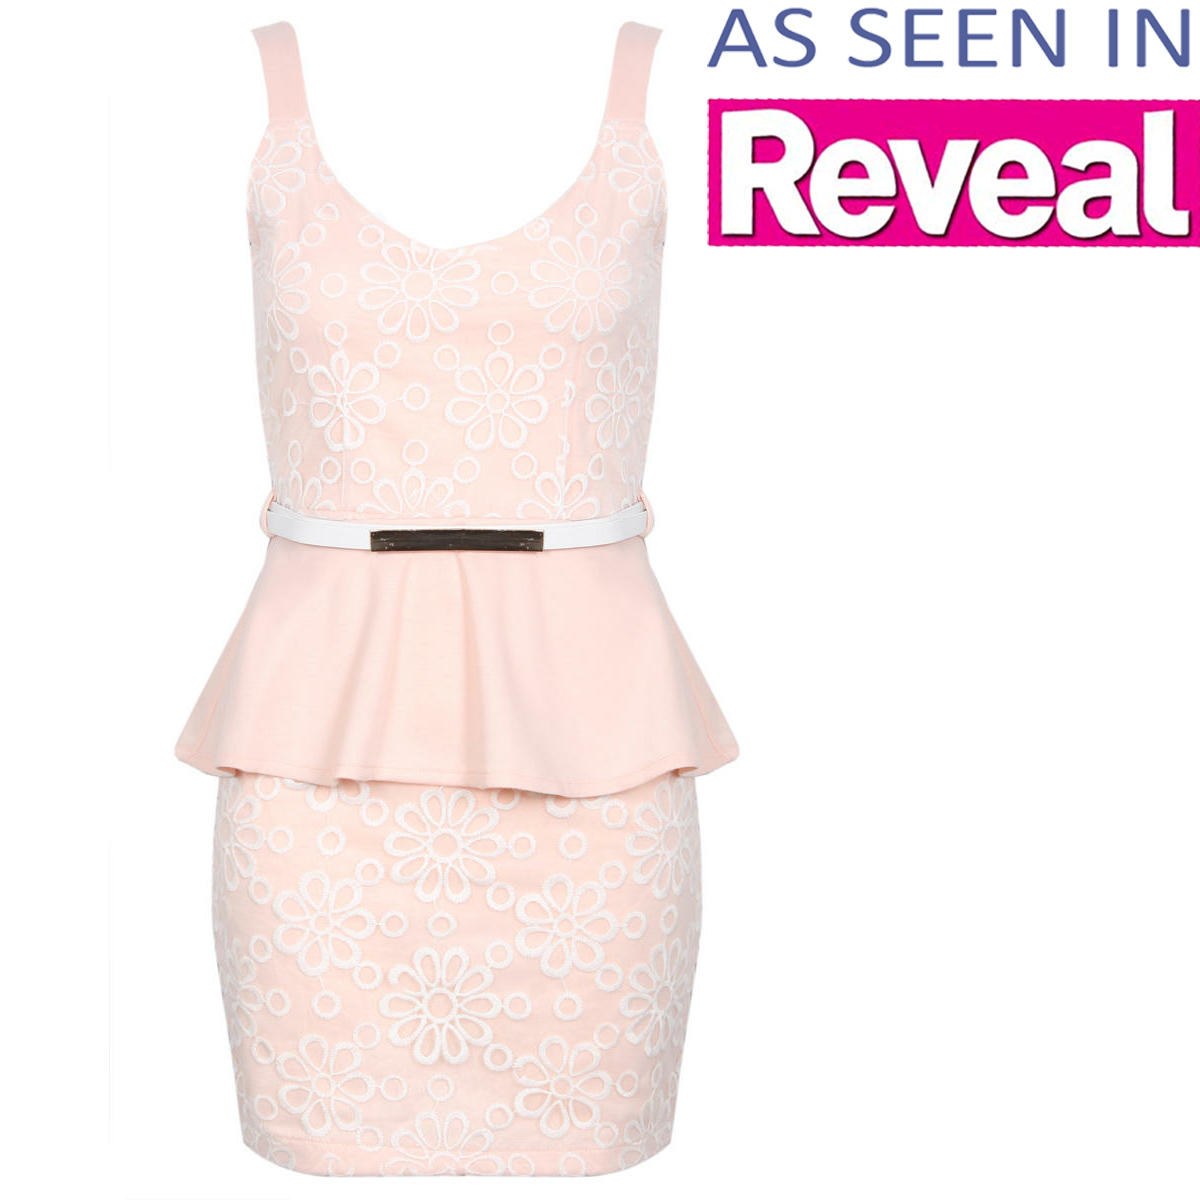 Nude Floral Embroidered Peplum Dress Preview